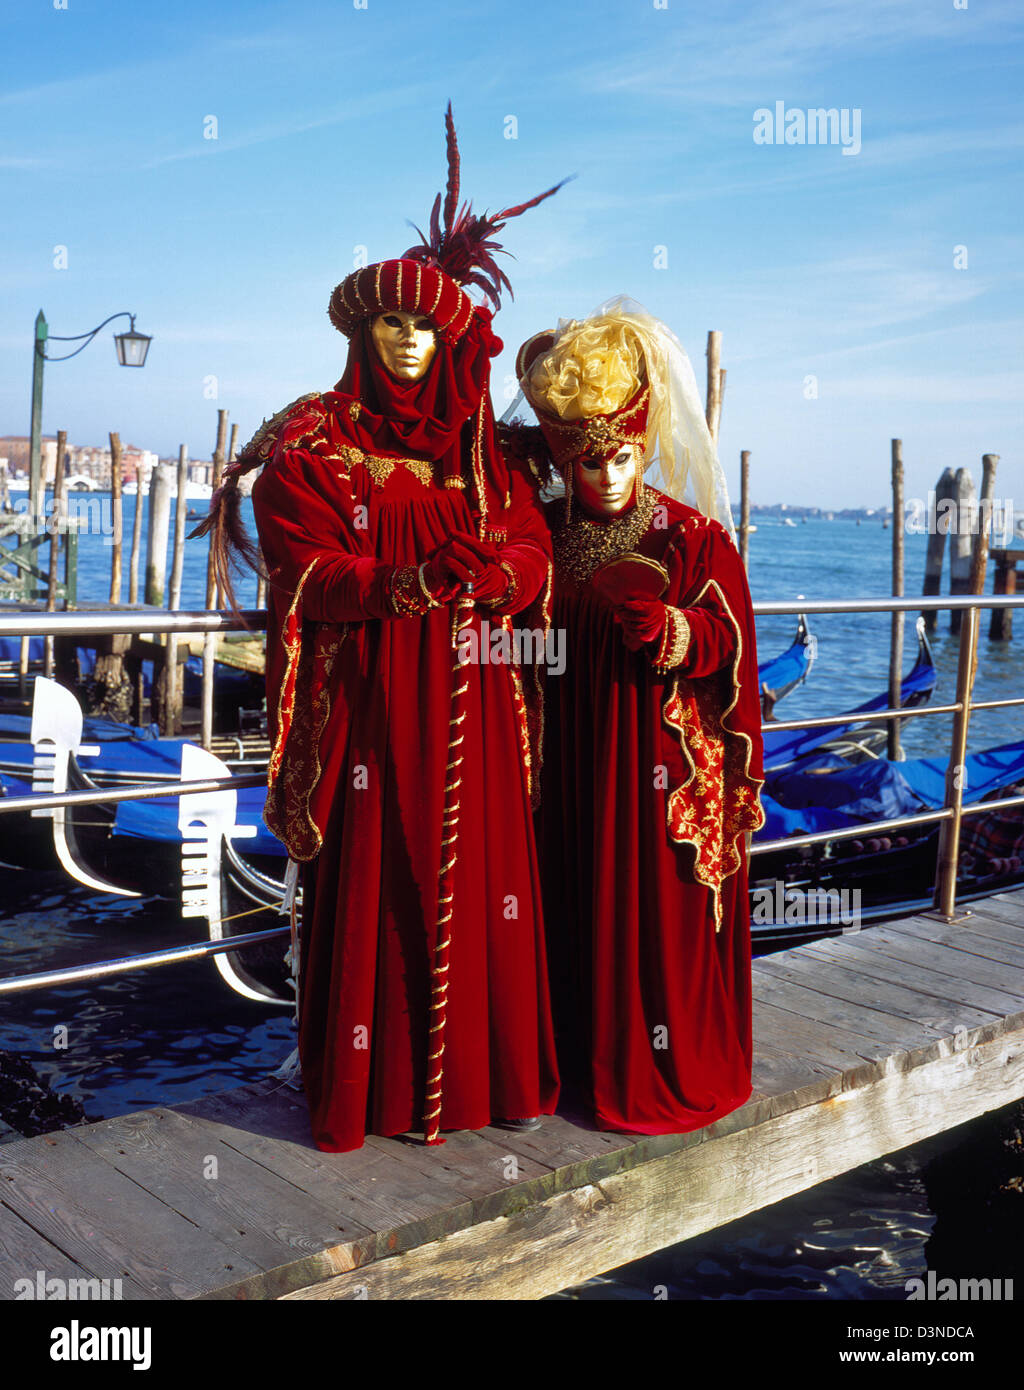 Two masks dressed up in historical costumes pose on a footbridge in Venice, Italy, 01 February 2006. Photo: Willy - Stock Image